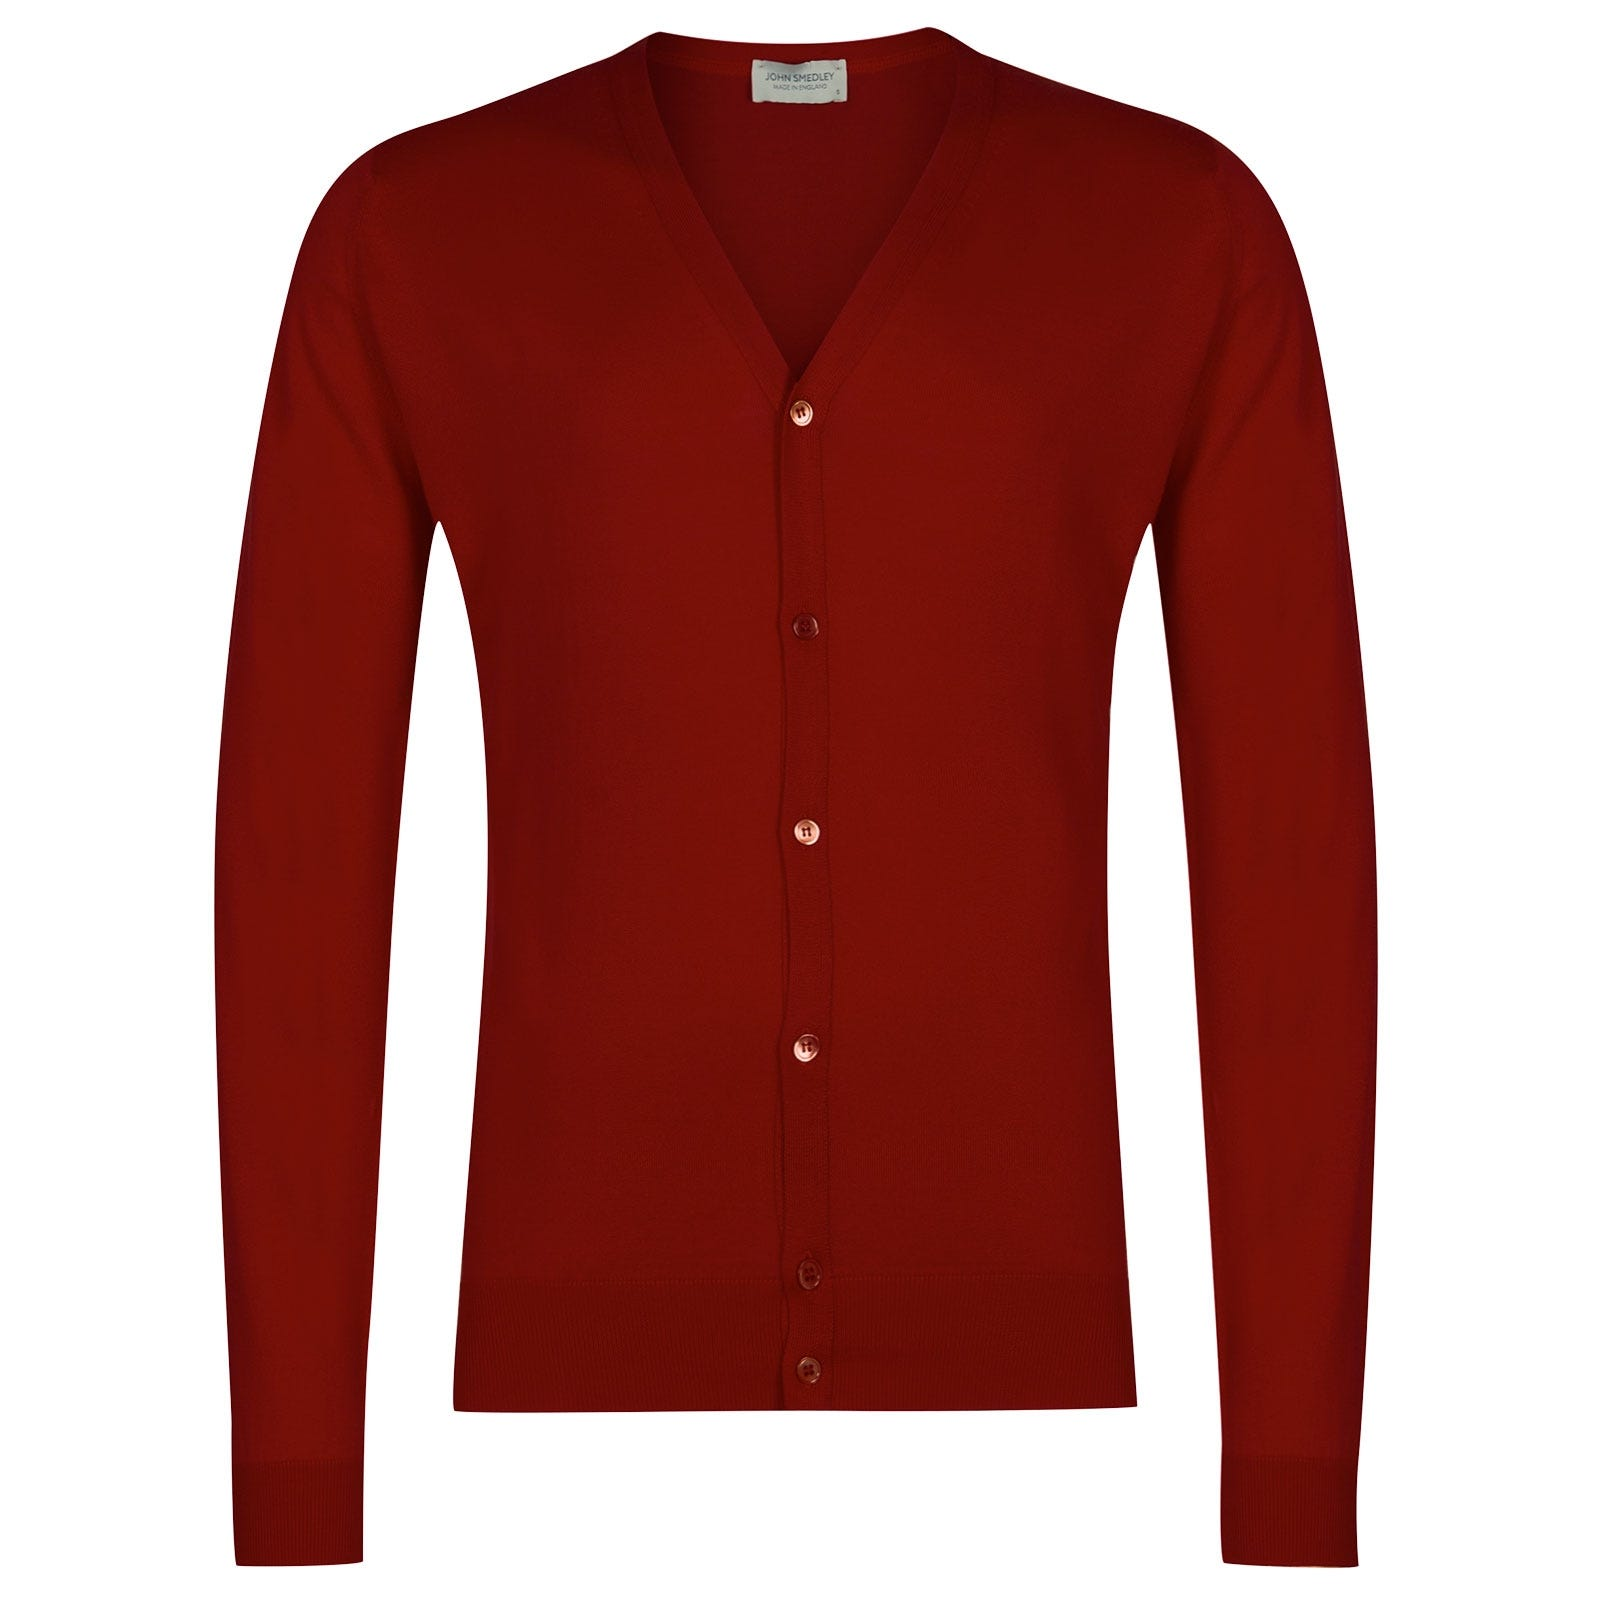 John Smedley Whitchurch Sea Island Cotton Cardigan in Thermal Red-XXL